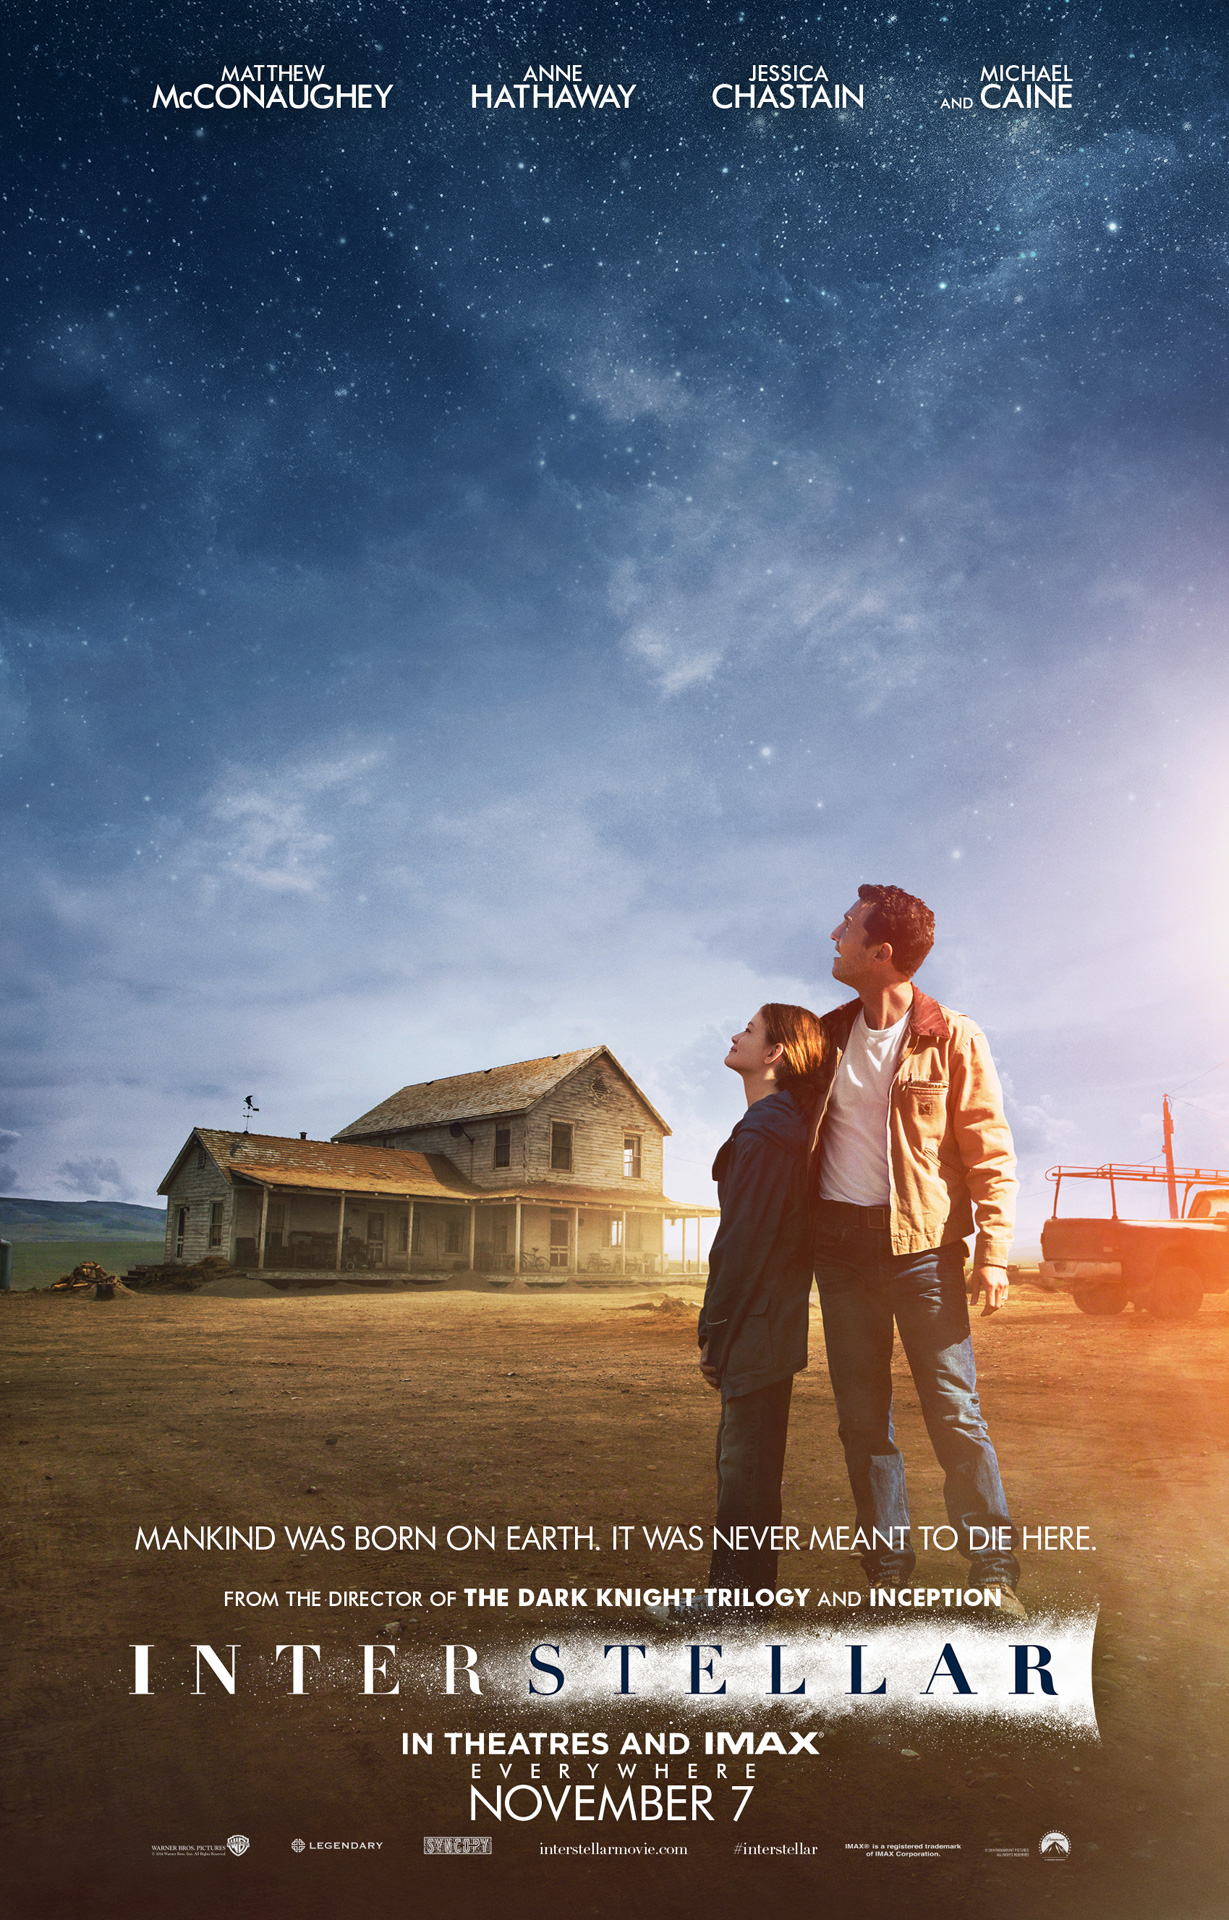 Four Interstellar Movie Posters Cover Earth and Beyond ...